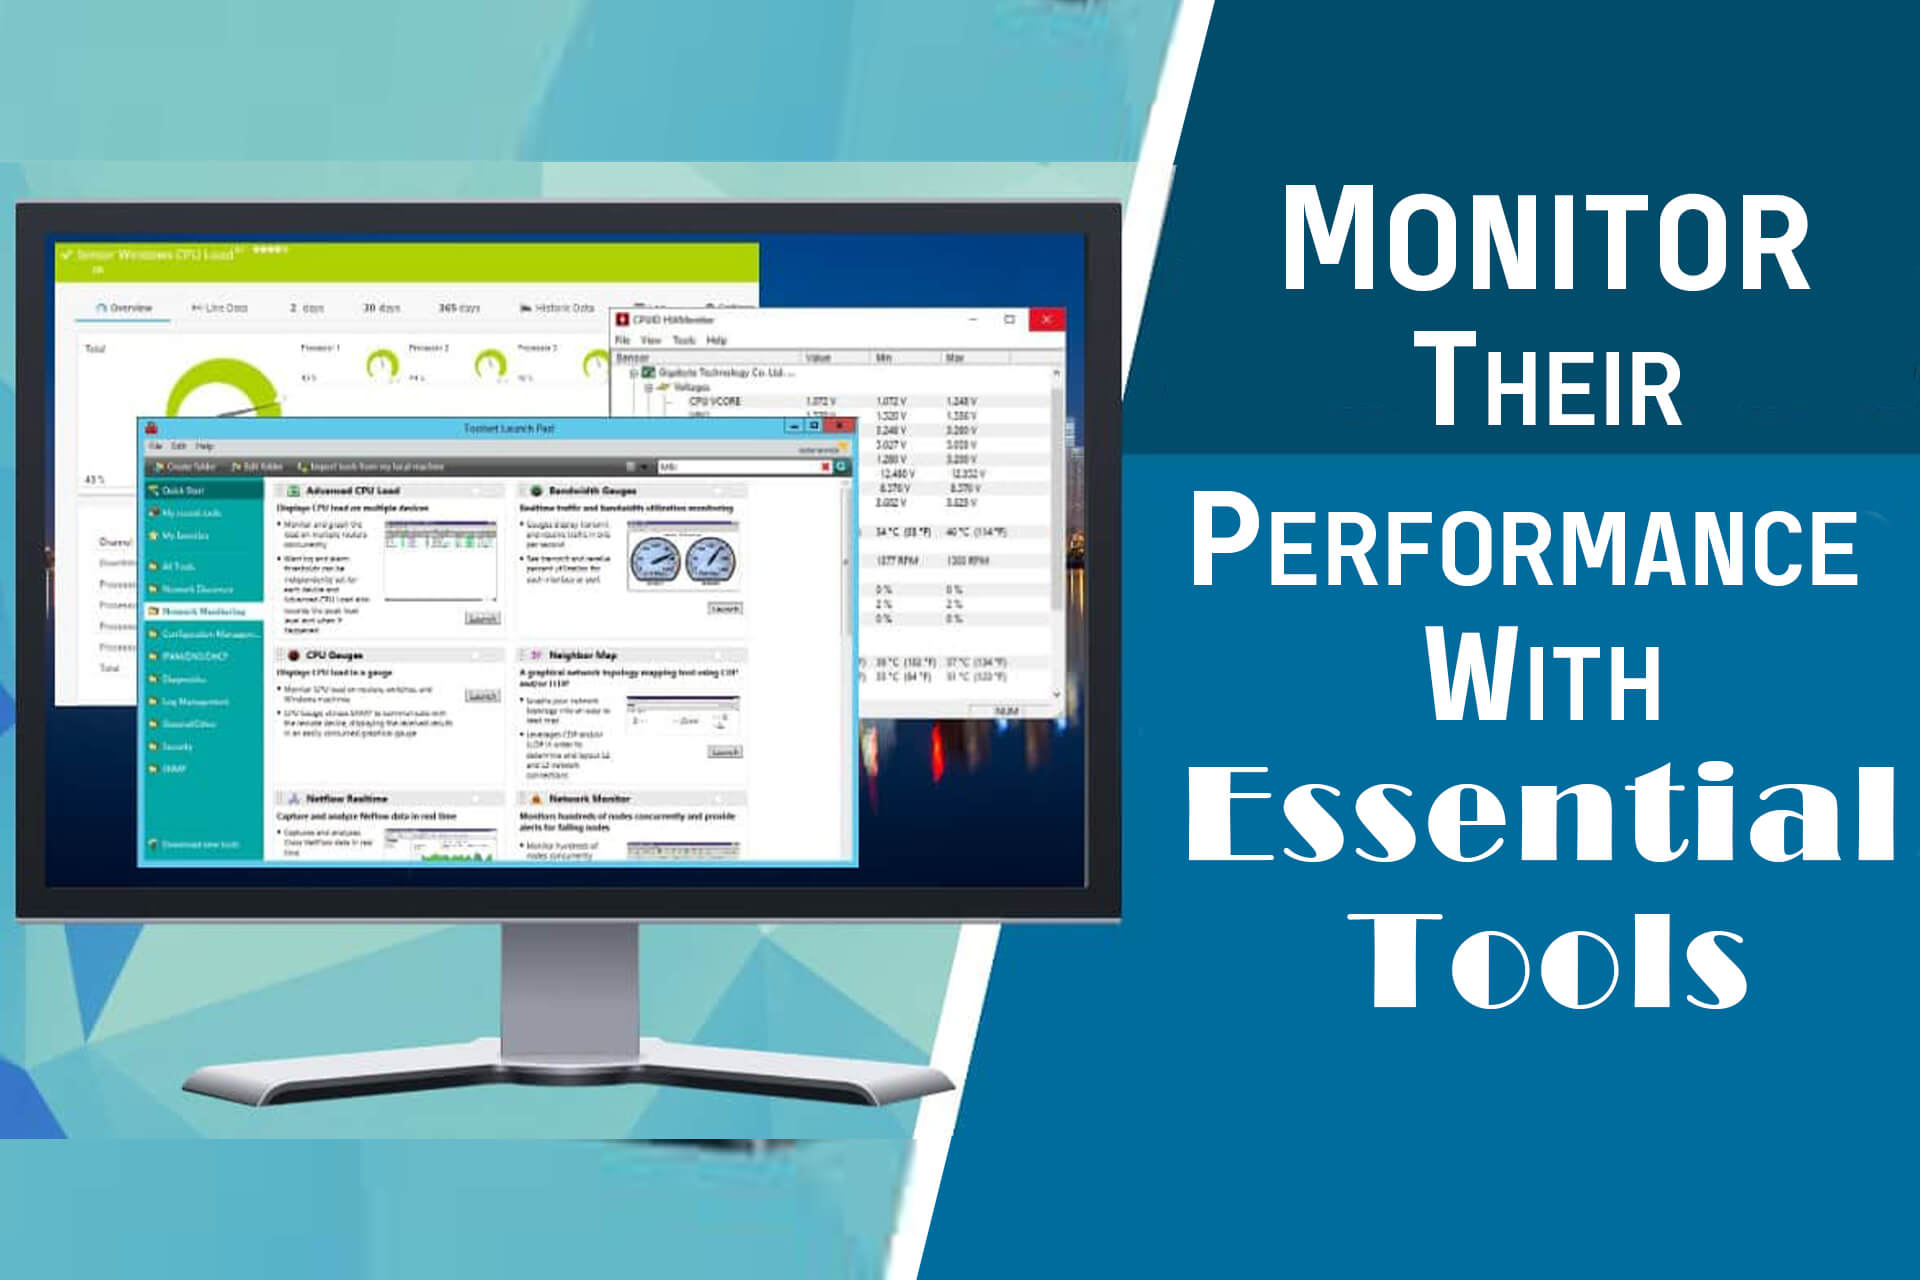 Monitor Their Performance With Essential Tools